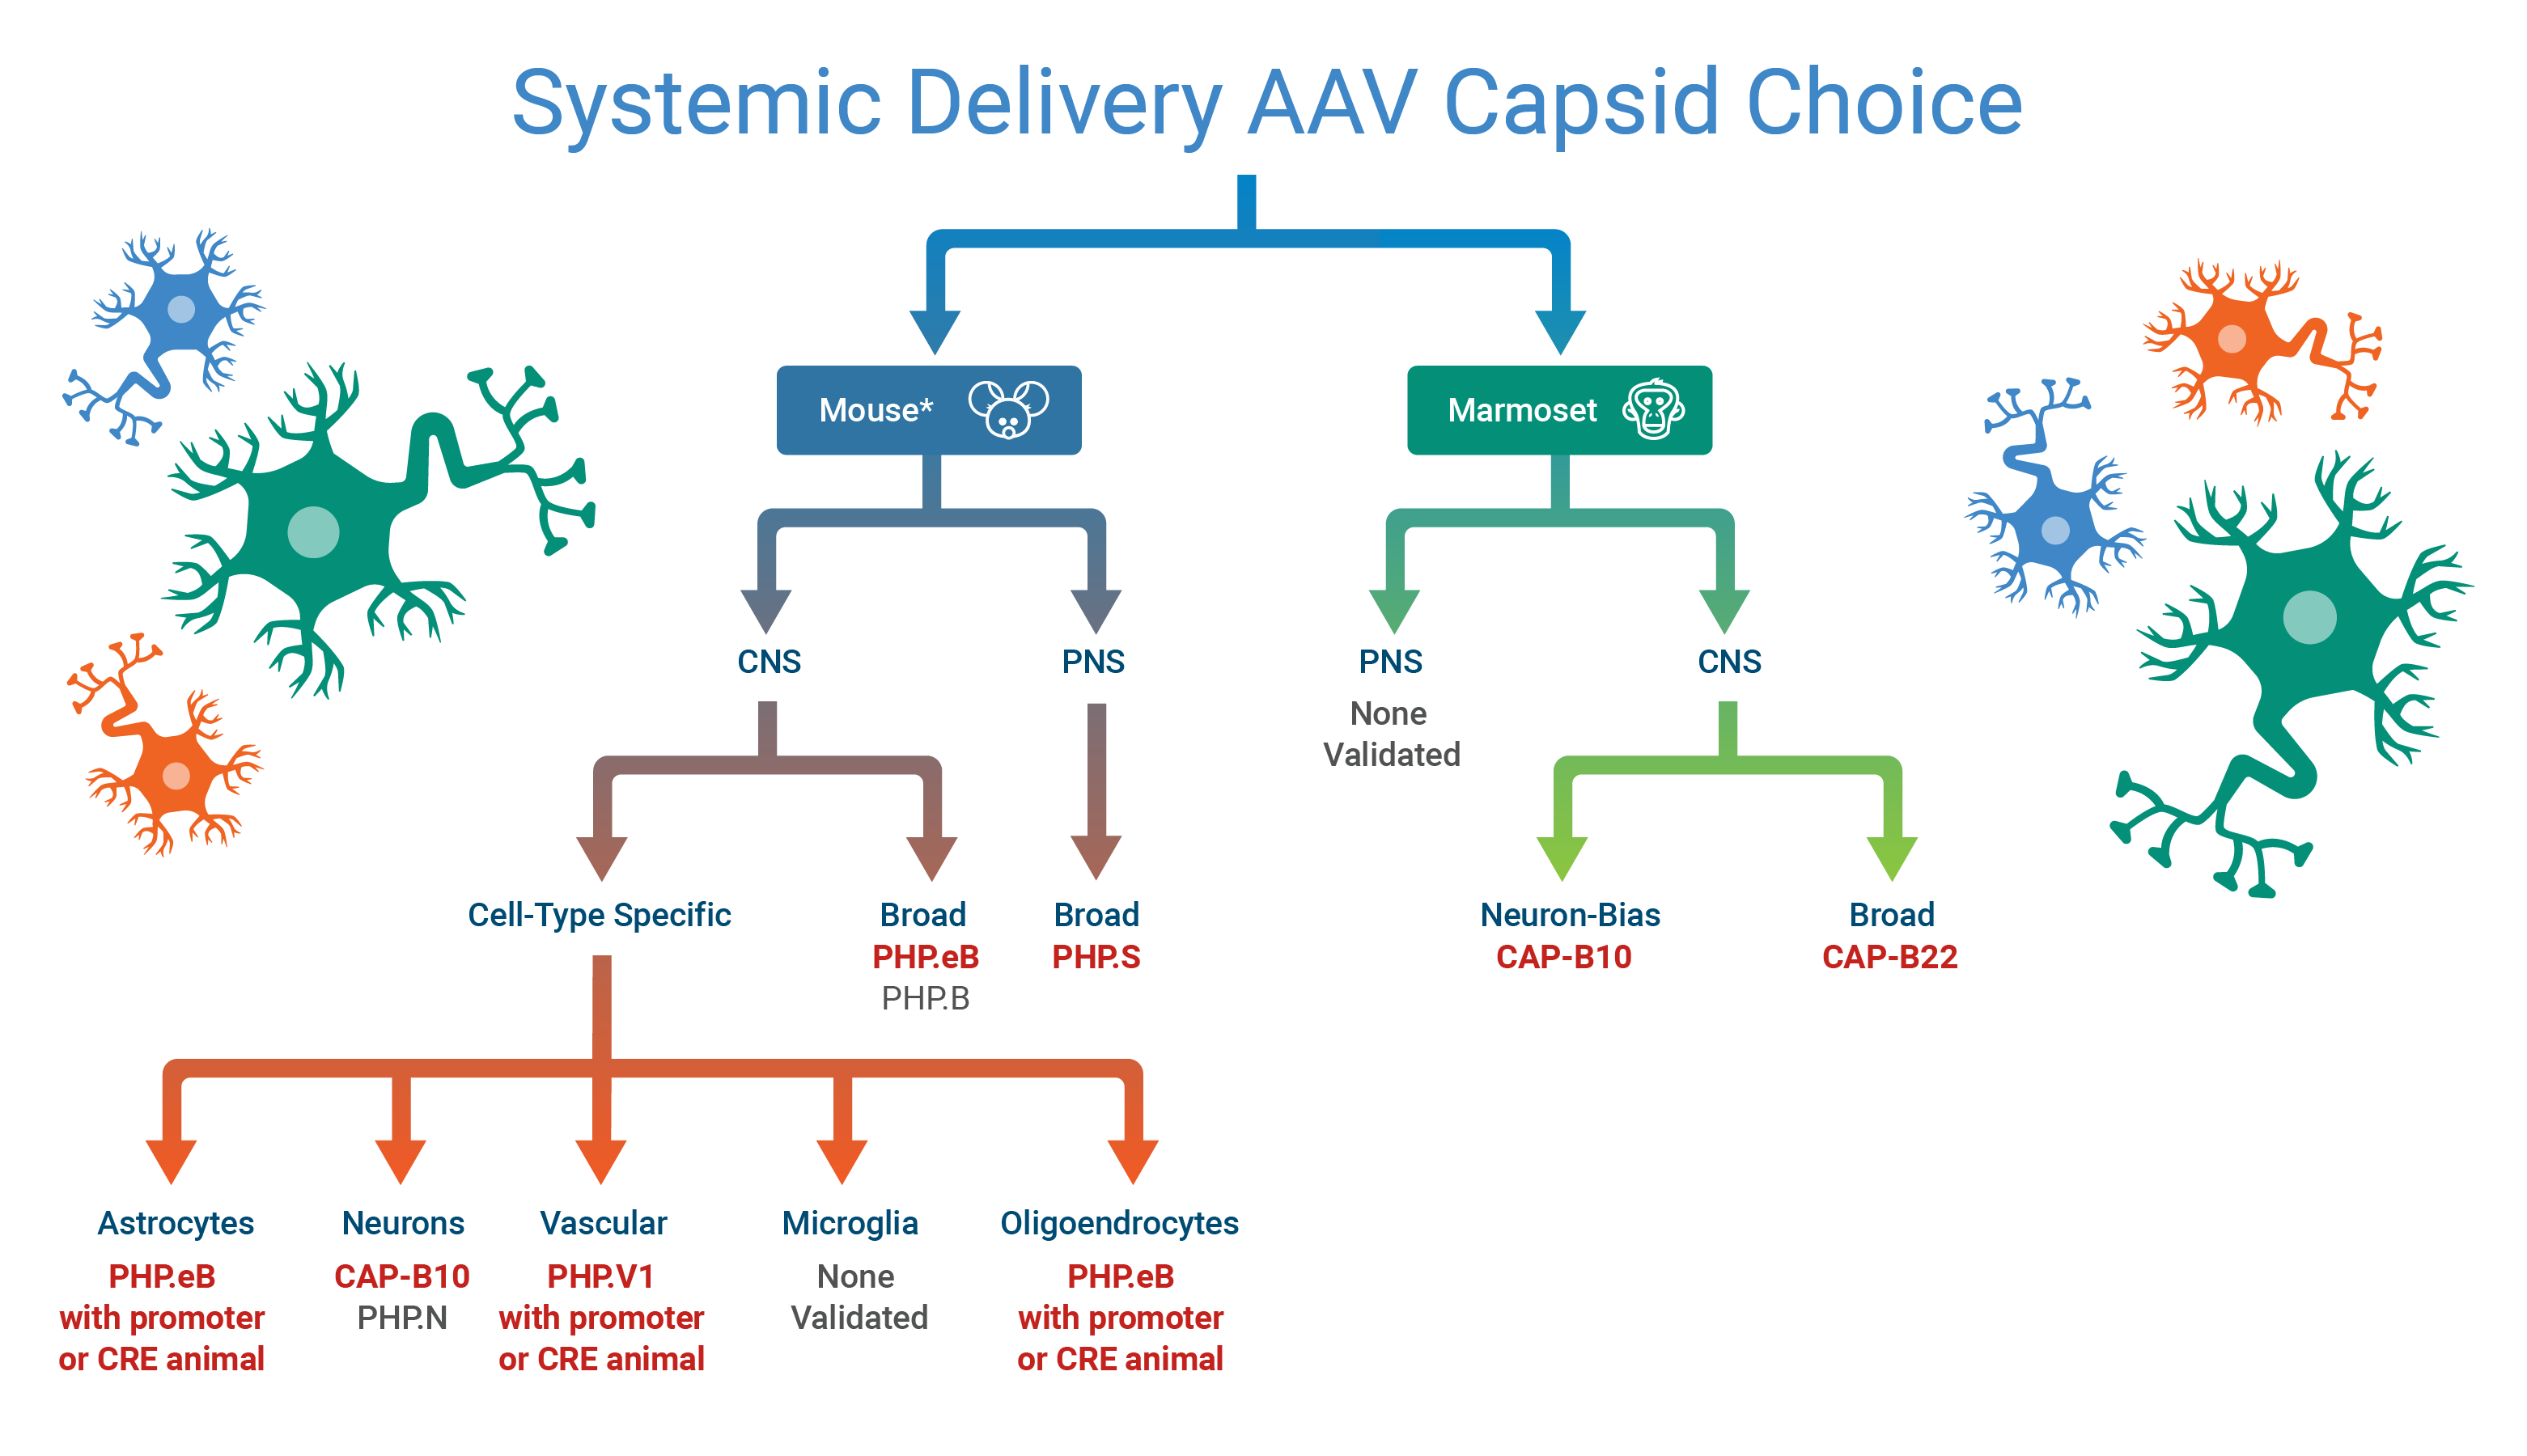 AAV decision tree. Described under the heading Text Description for the AAV Decision Tree